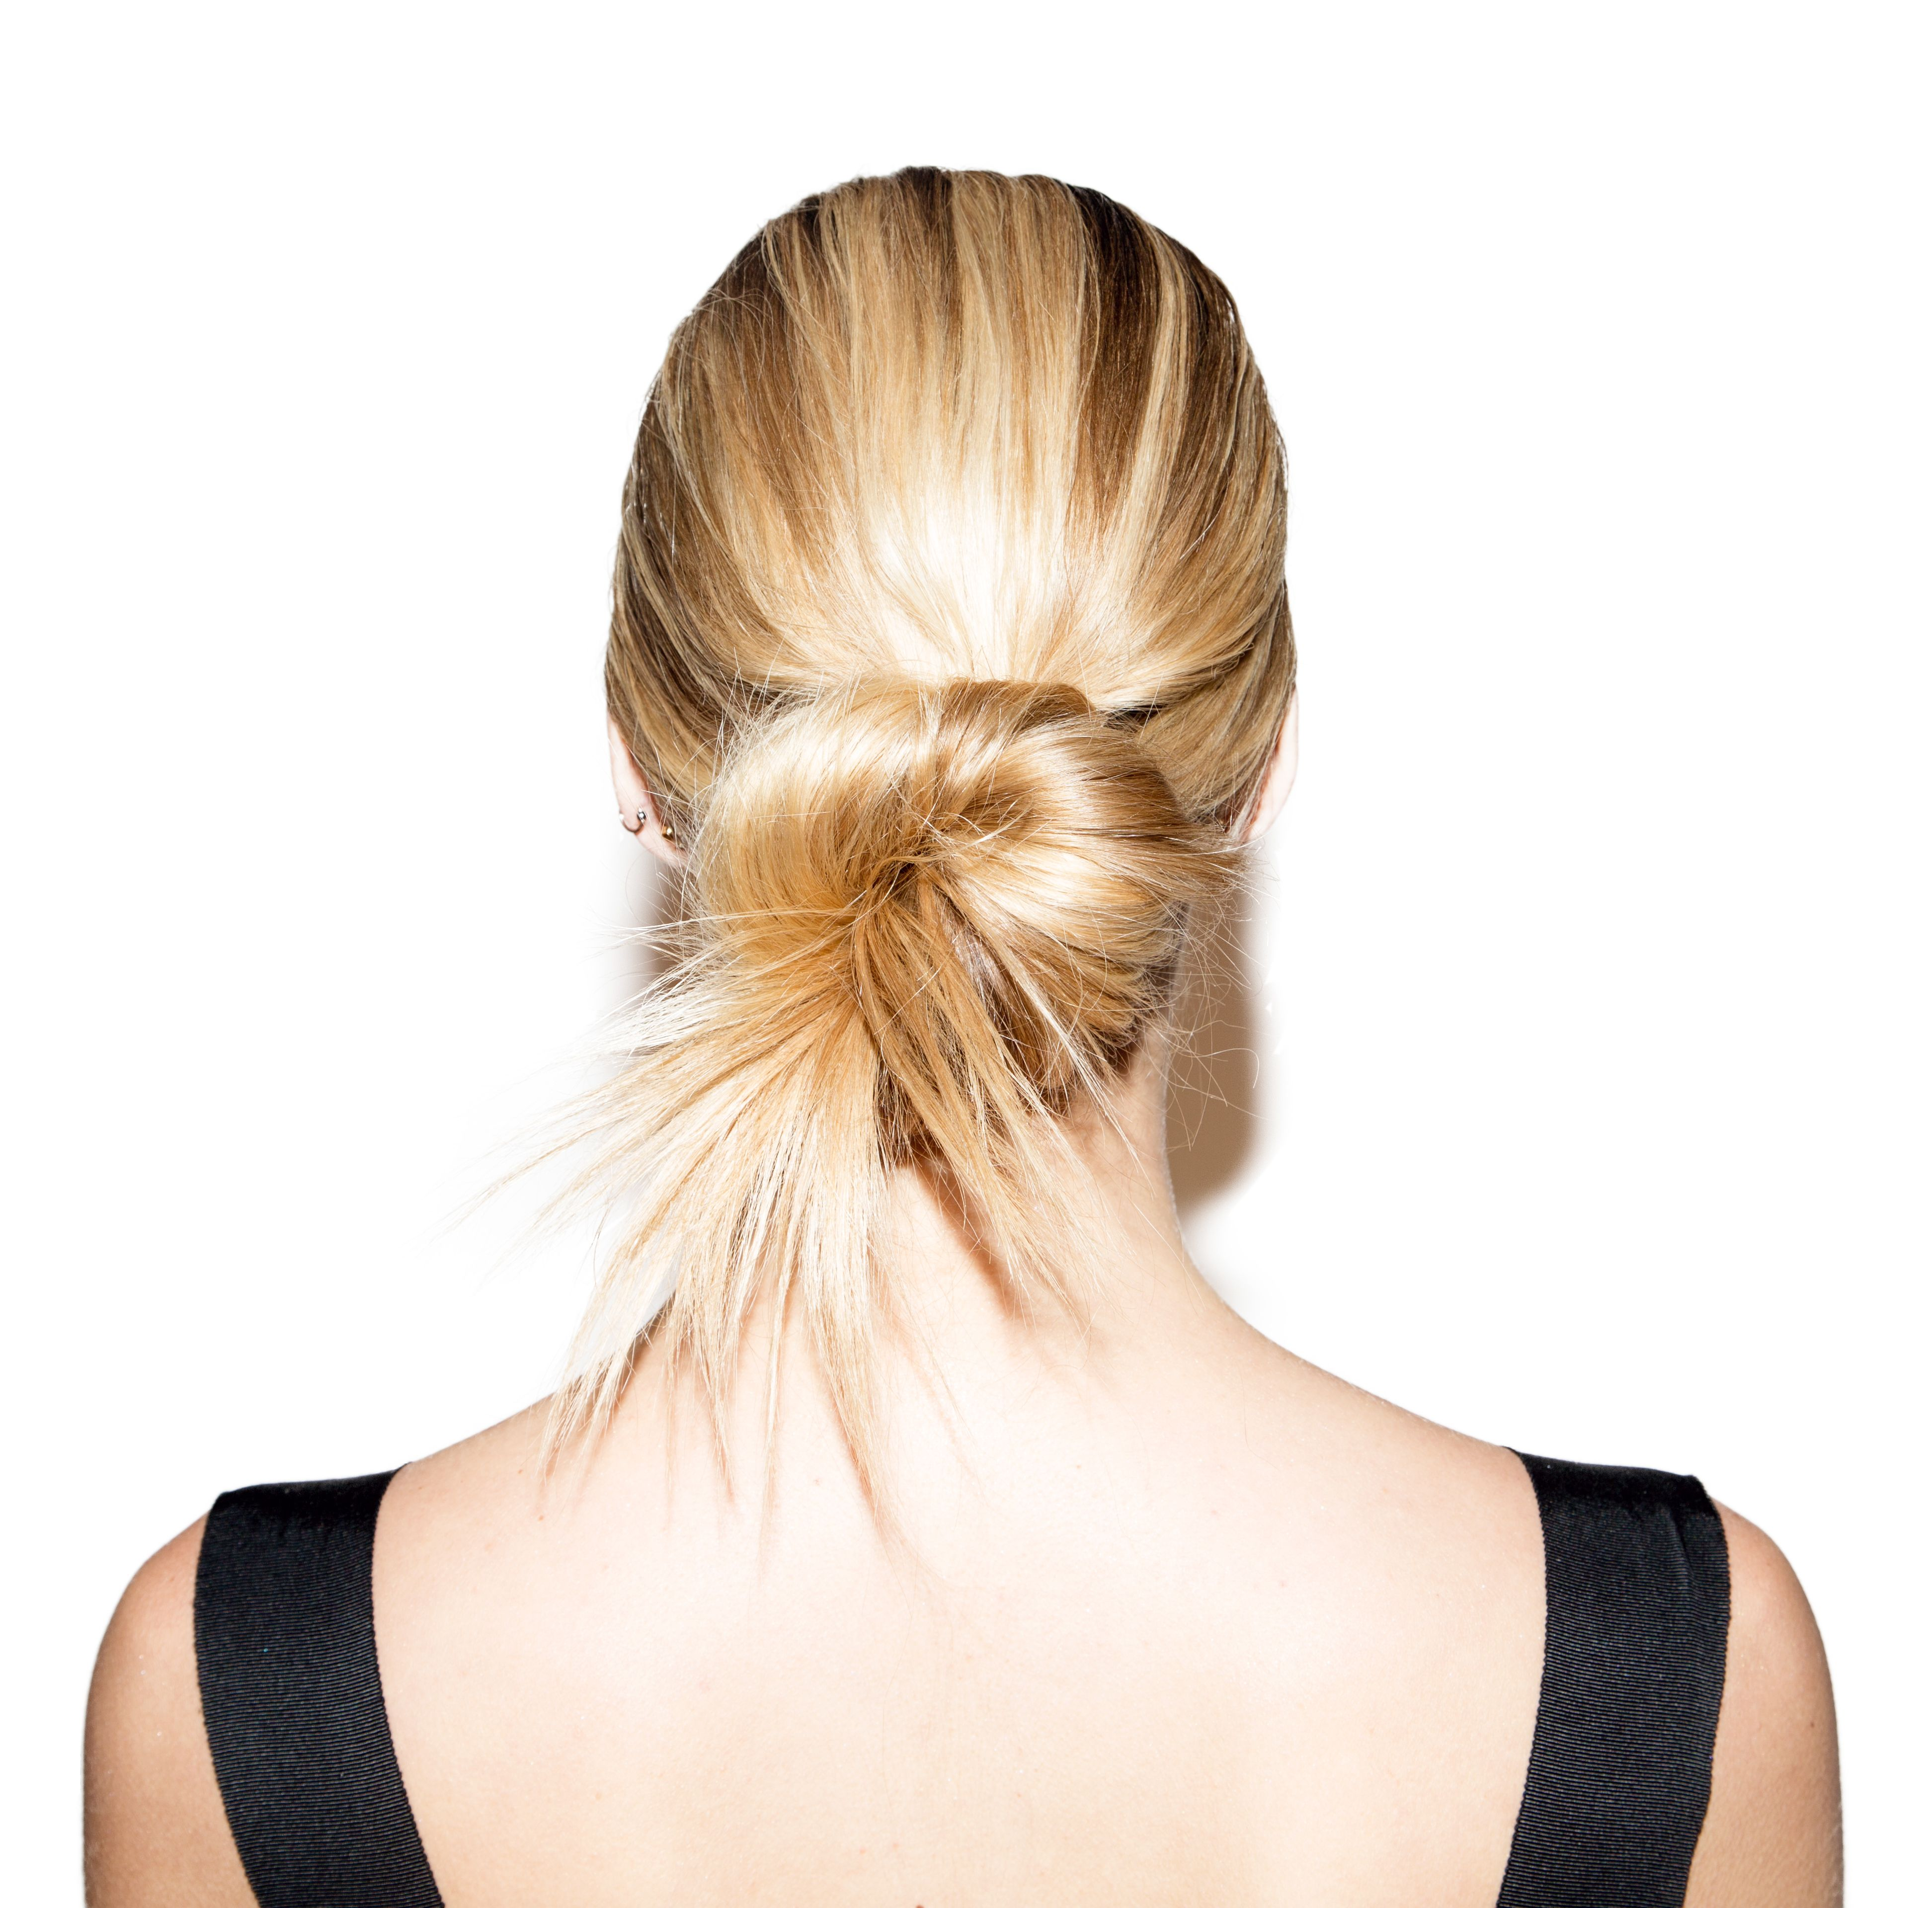 Low Bun Hairstyle Tutorial - How To Do a Perfect Low Bun